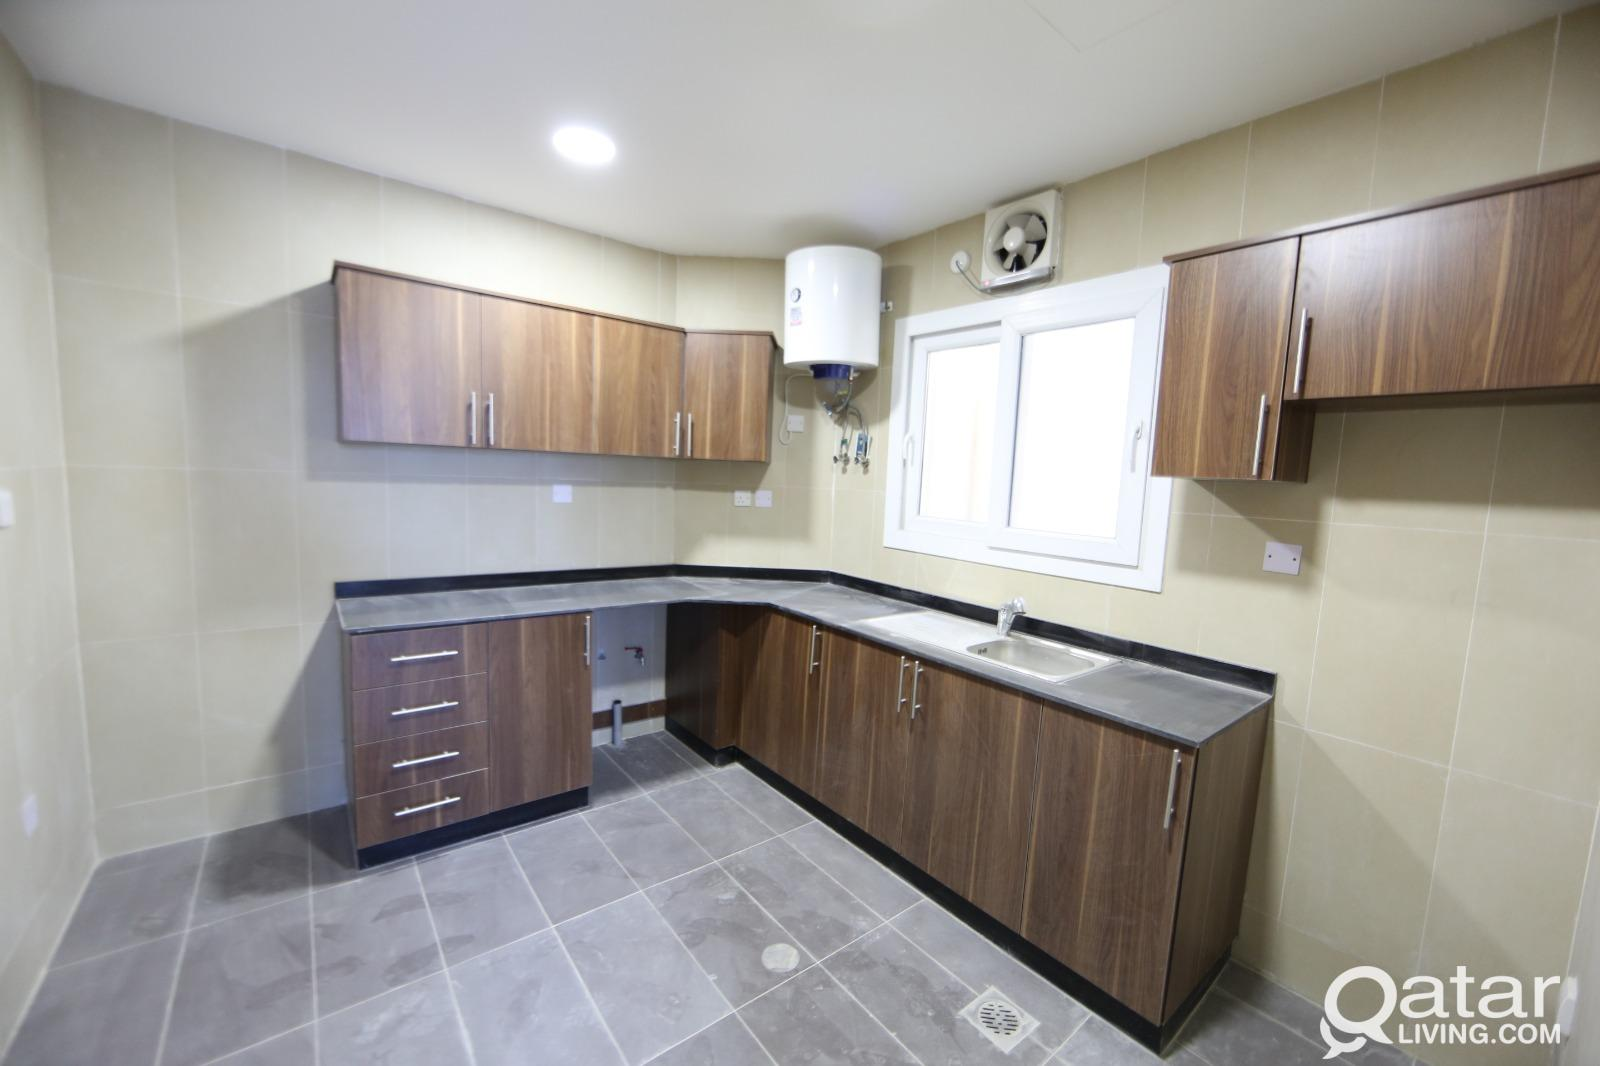 2BHK NO COMMISSION ( FLAT) AVAILABLE IN  AL SADD